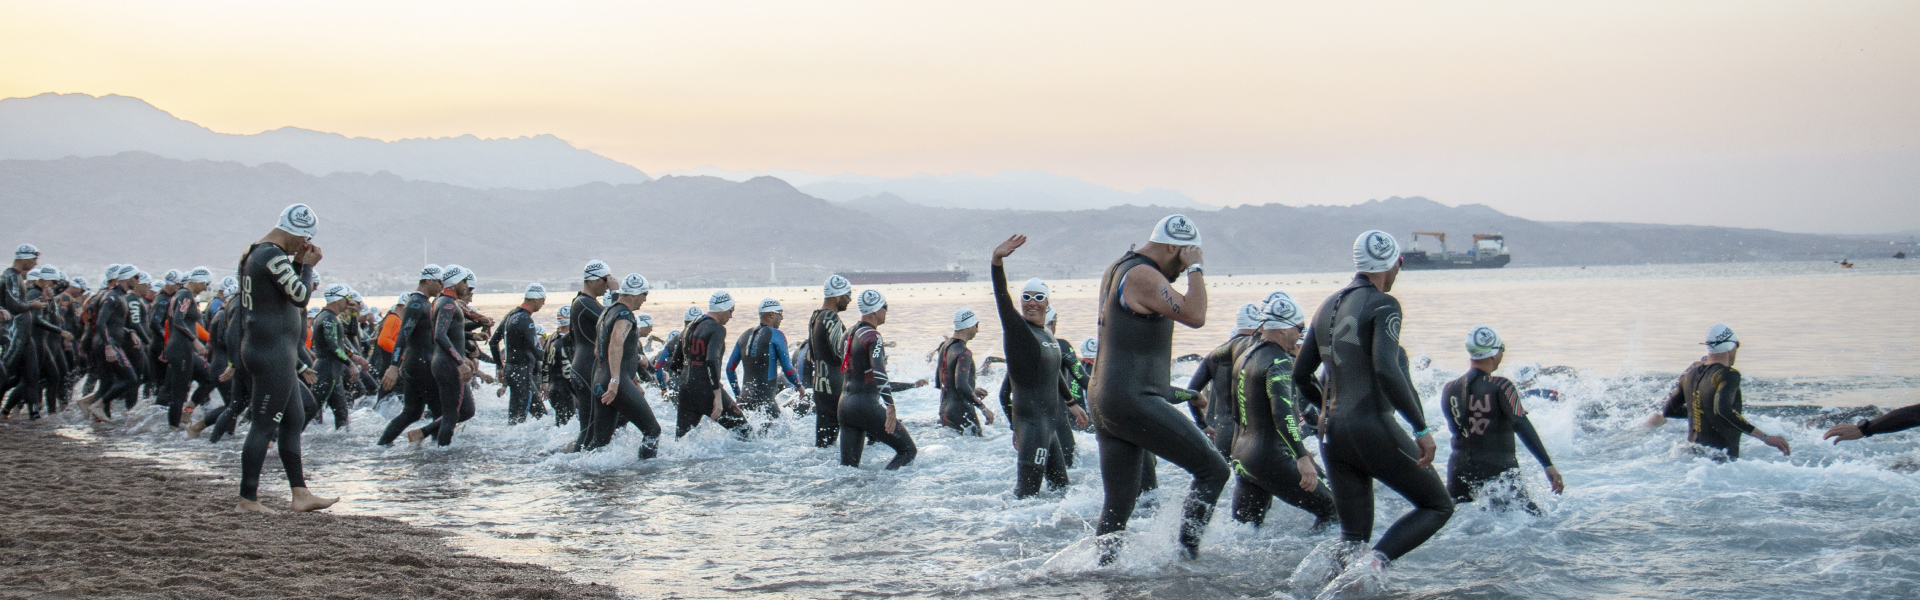 Triathlon events for first timers